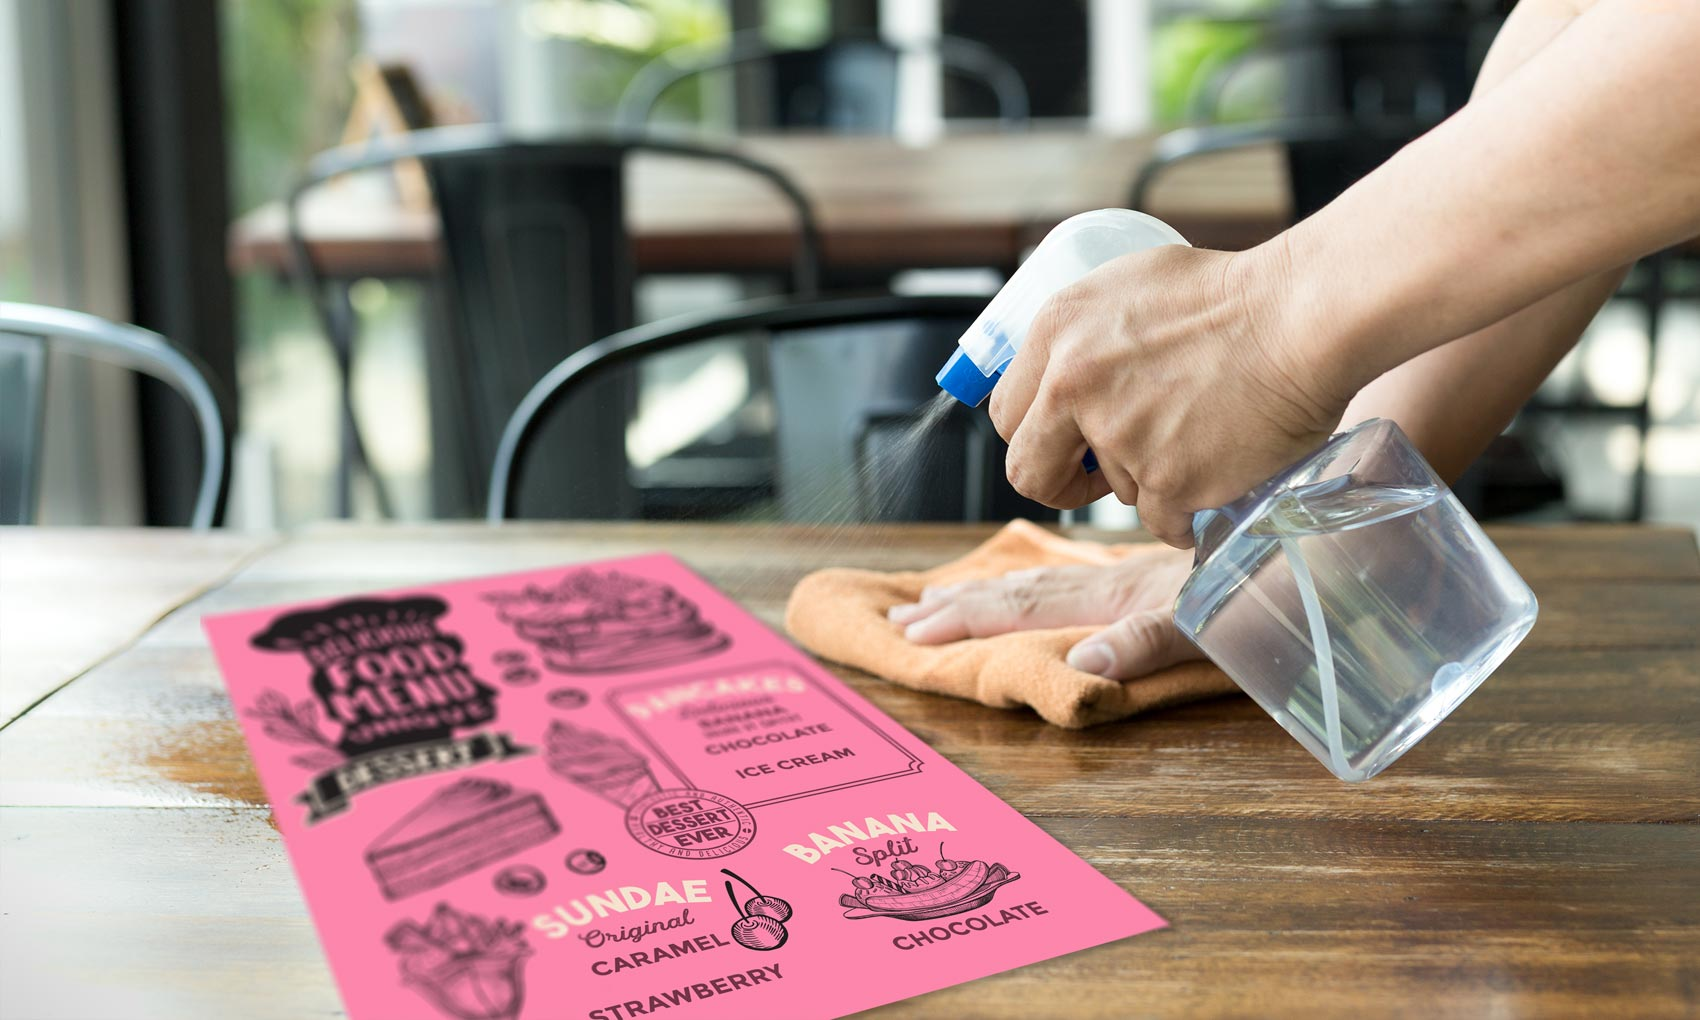 Plastic menus which can be washed and sanitised between uses